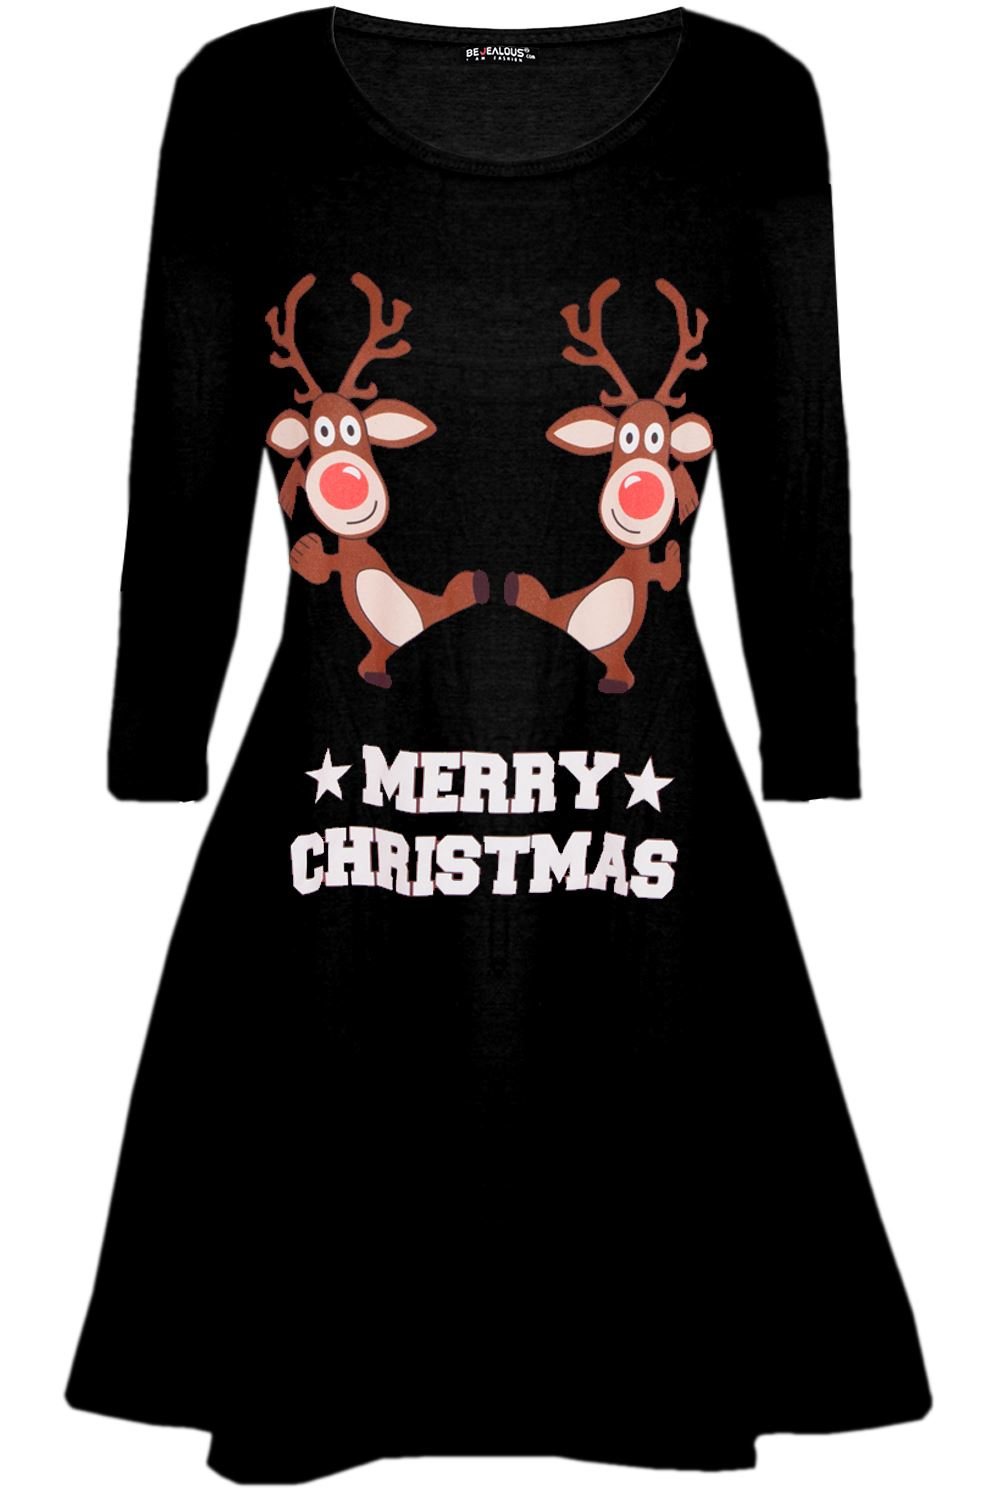 Womens-Ladies-Kids-Girls-Christmas-Xmas-Santa-Reindeer-Flared-Swing-Mini-Dress thumbnail 20